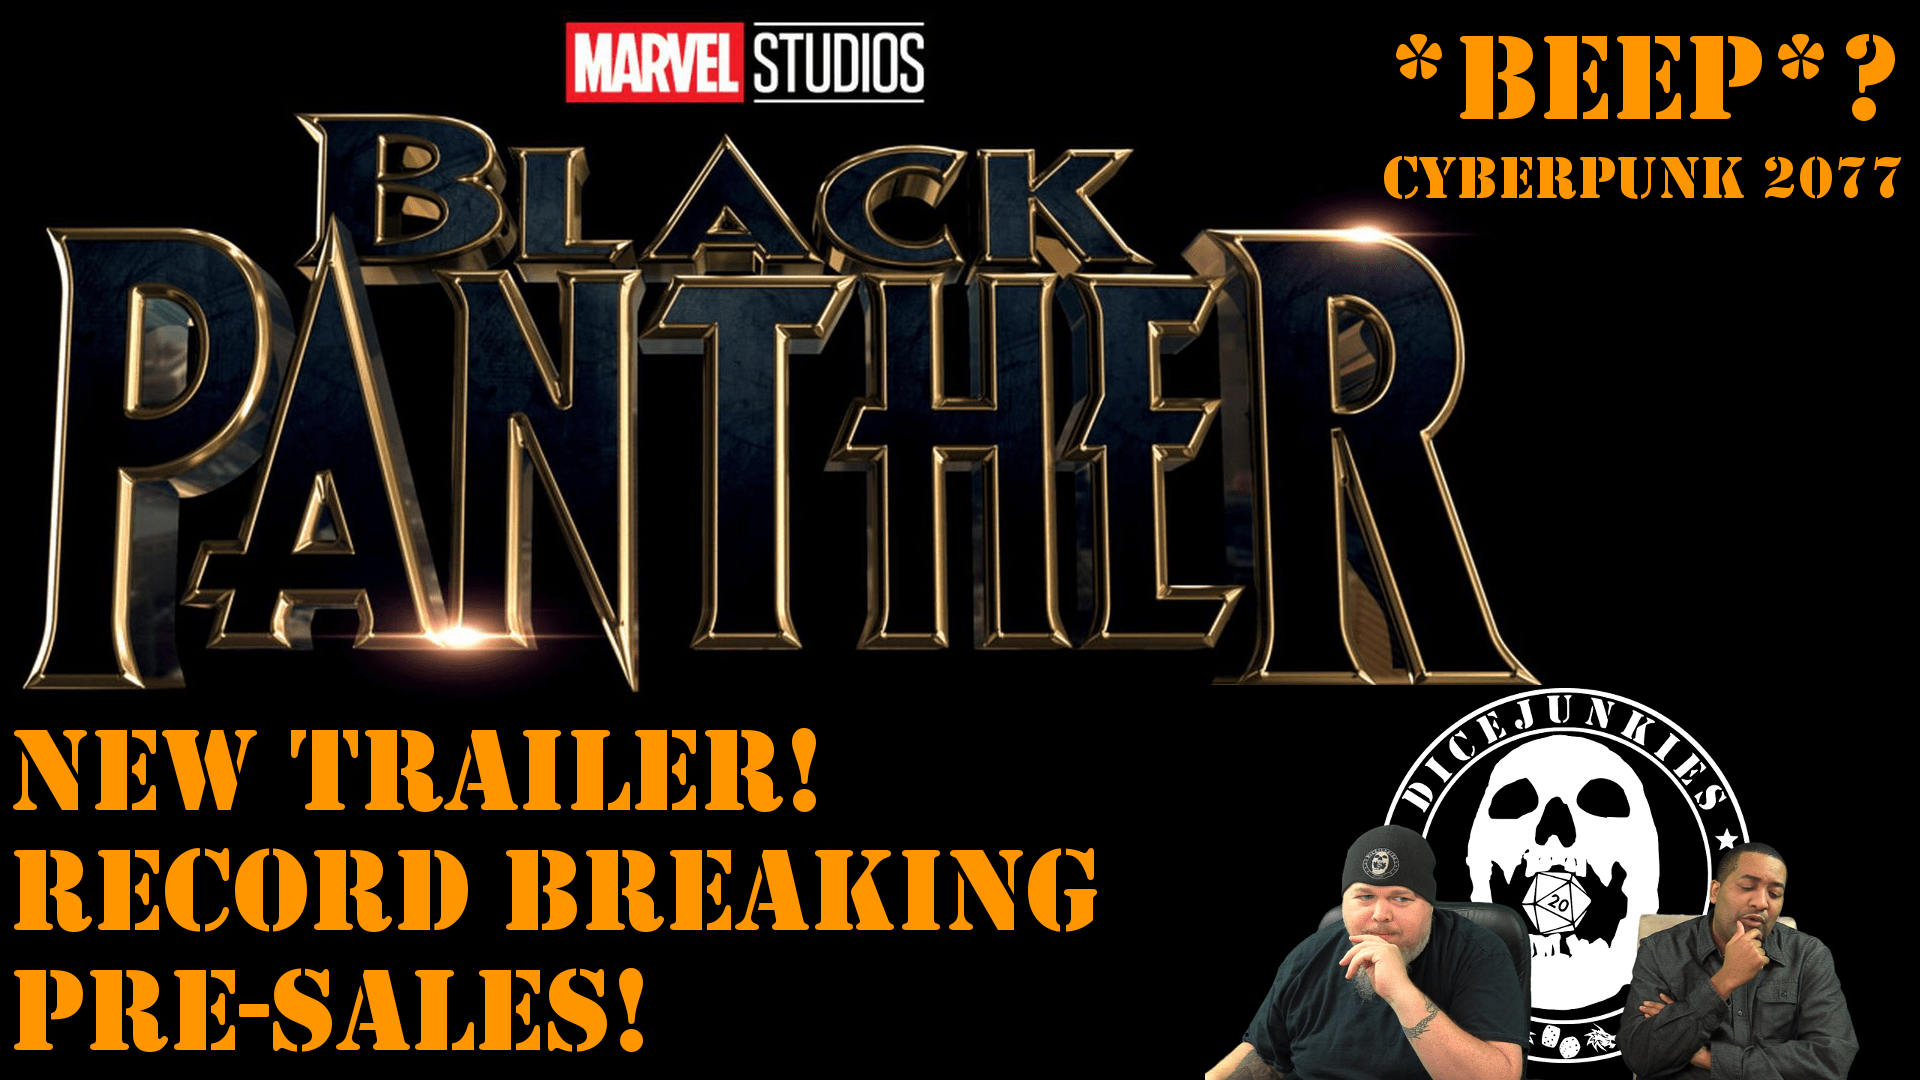 Stunning Black Panther Trailer and Pre-sales